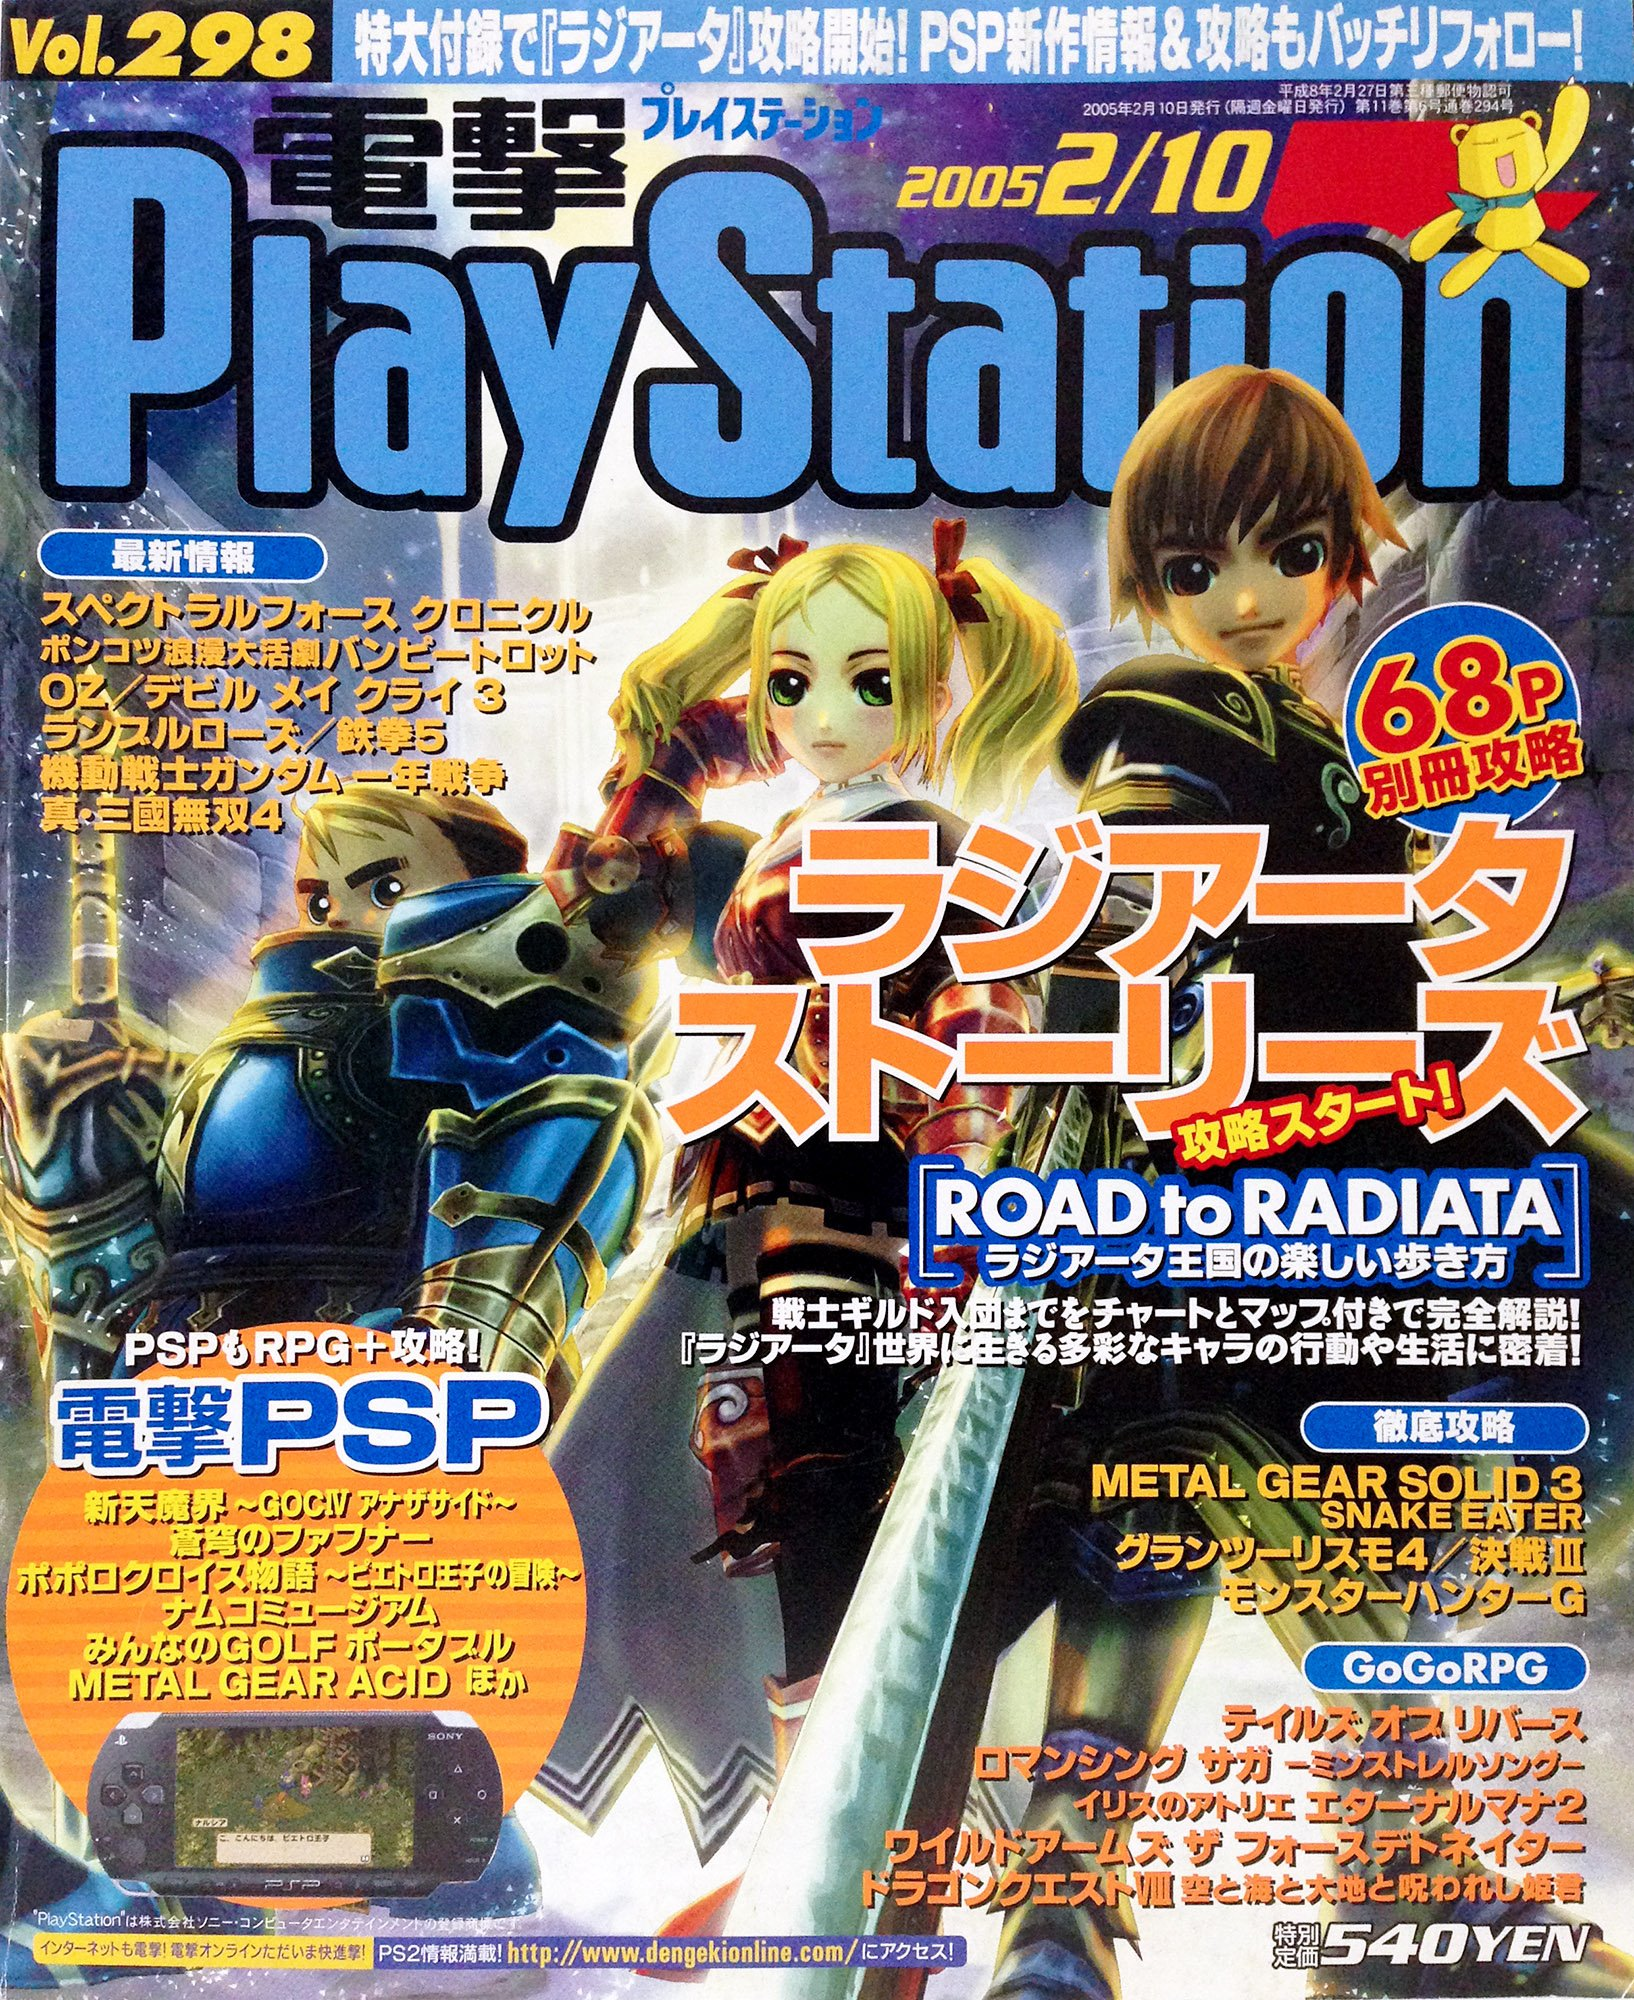 Dengeki PlayStation 298 (February 10, 2005)